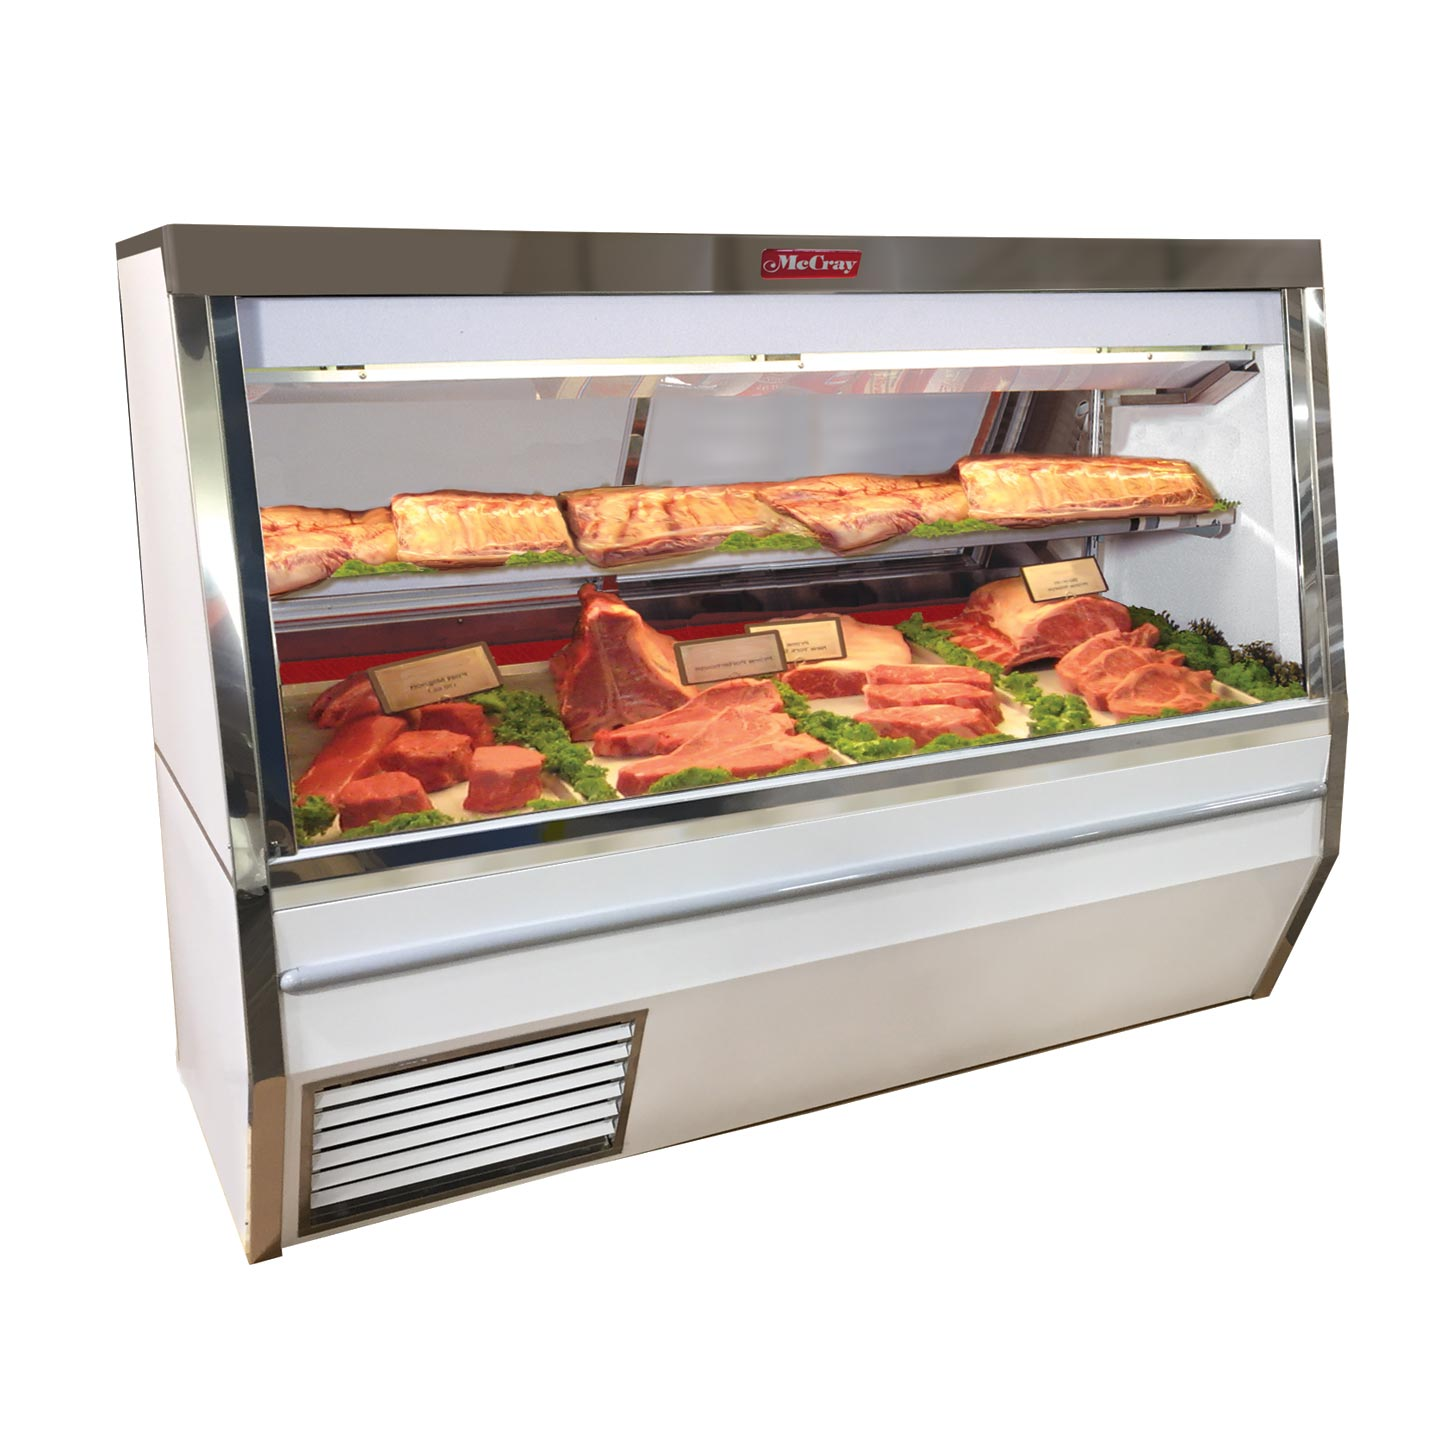 Howard-McCray SC-CMS34N-4-LED display case, red meat deli